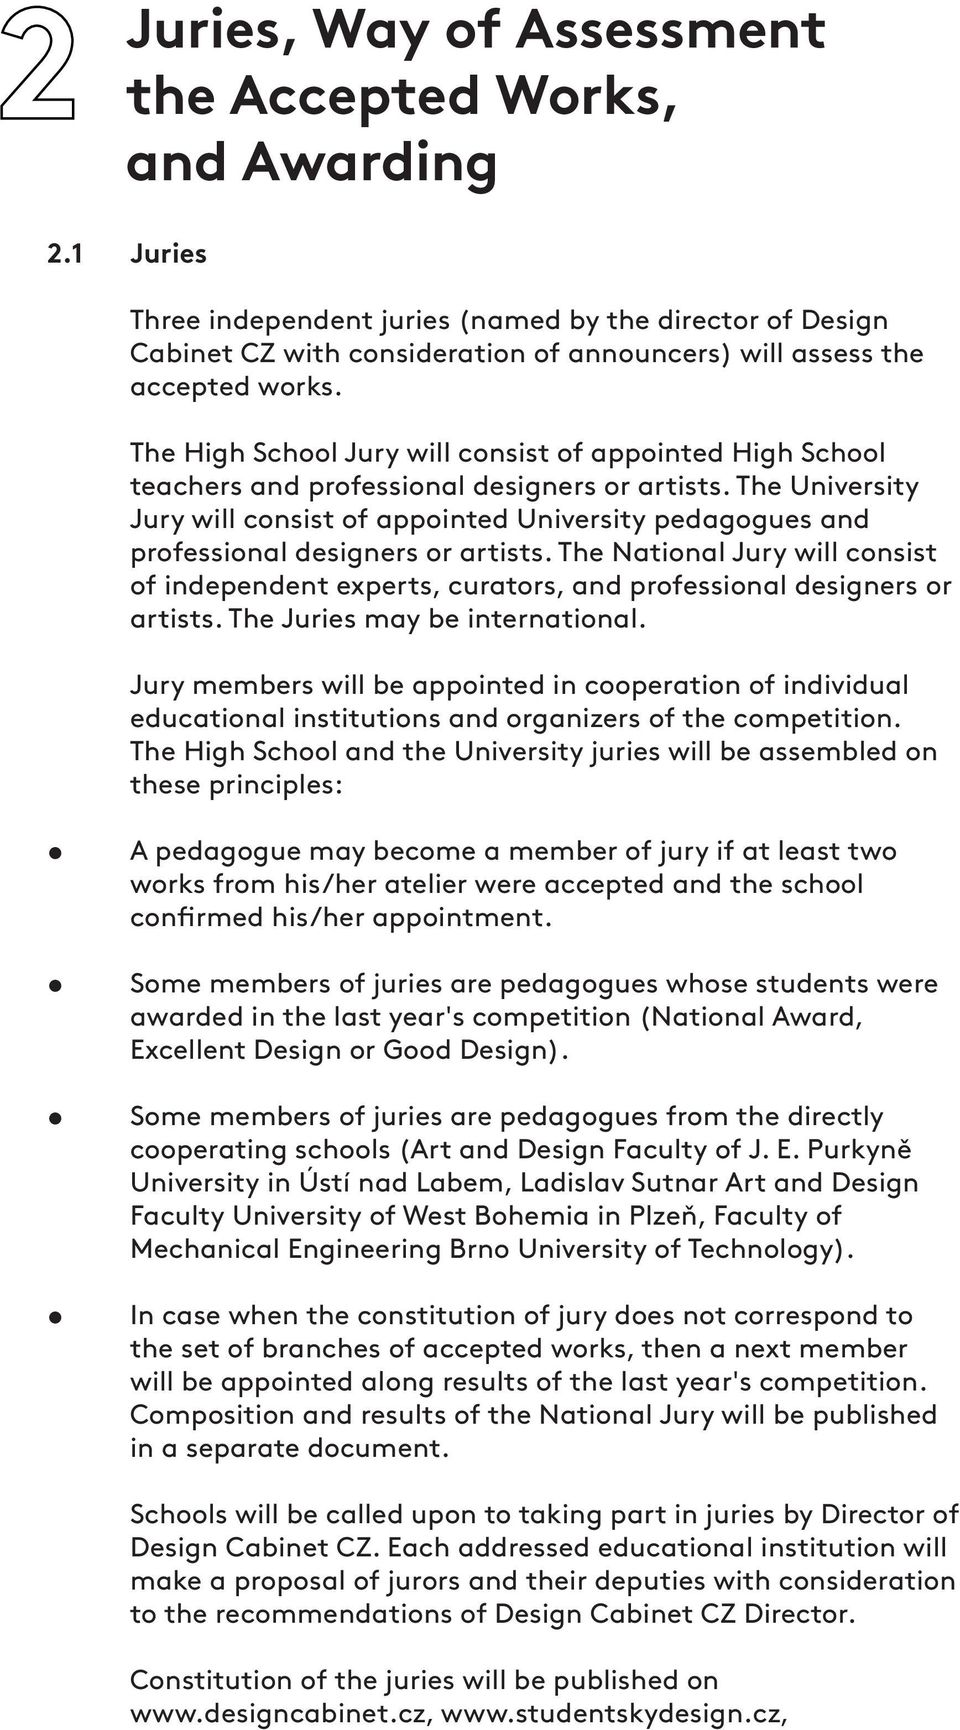 The High School Jury will consist of appointed High School teachers and professional designers or artists.